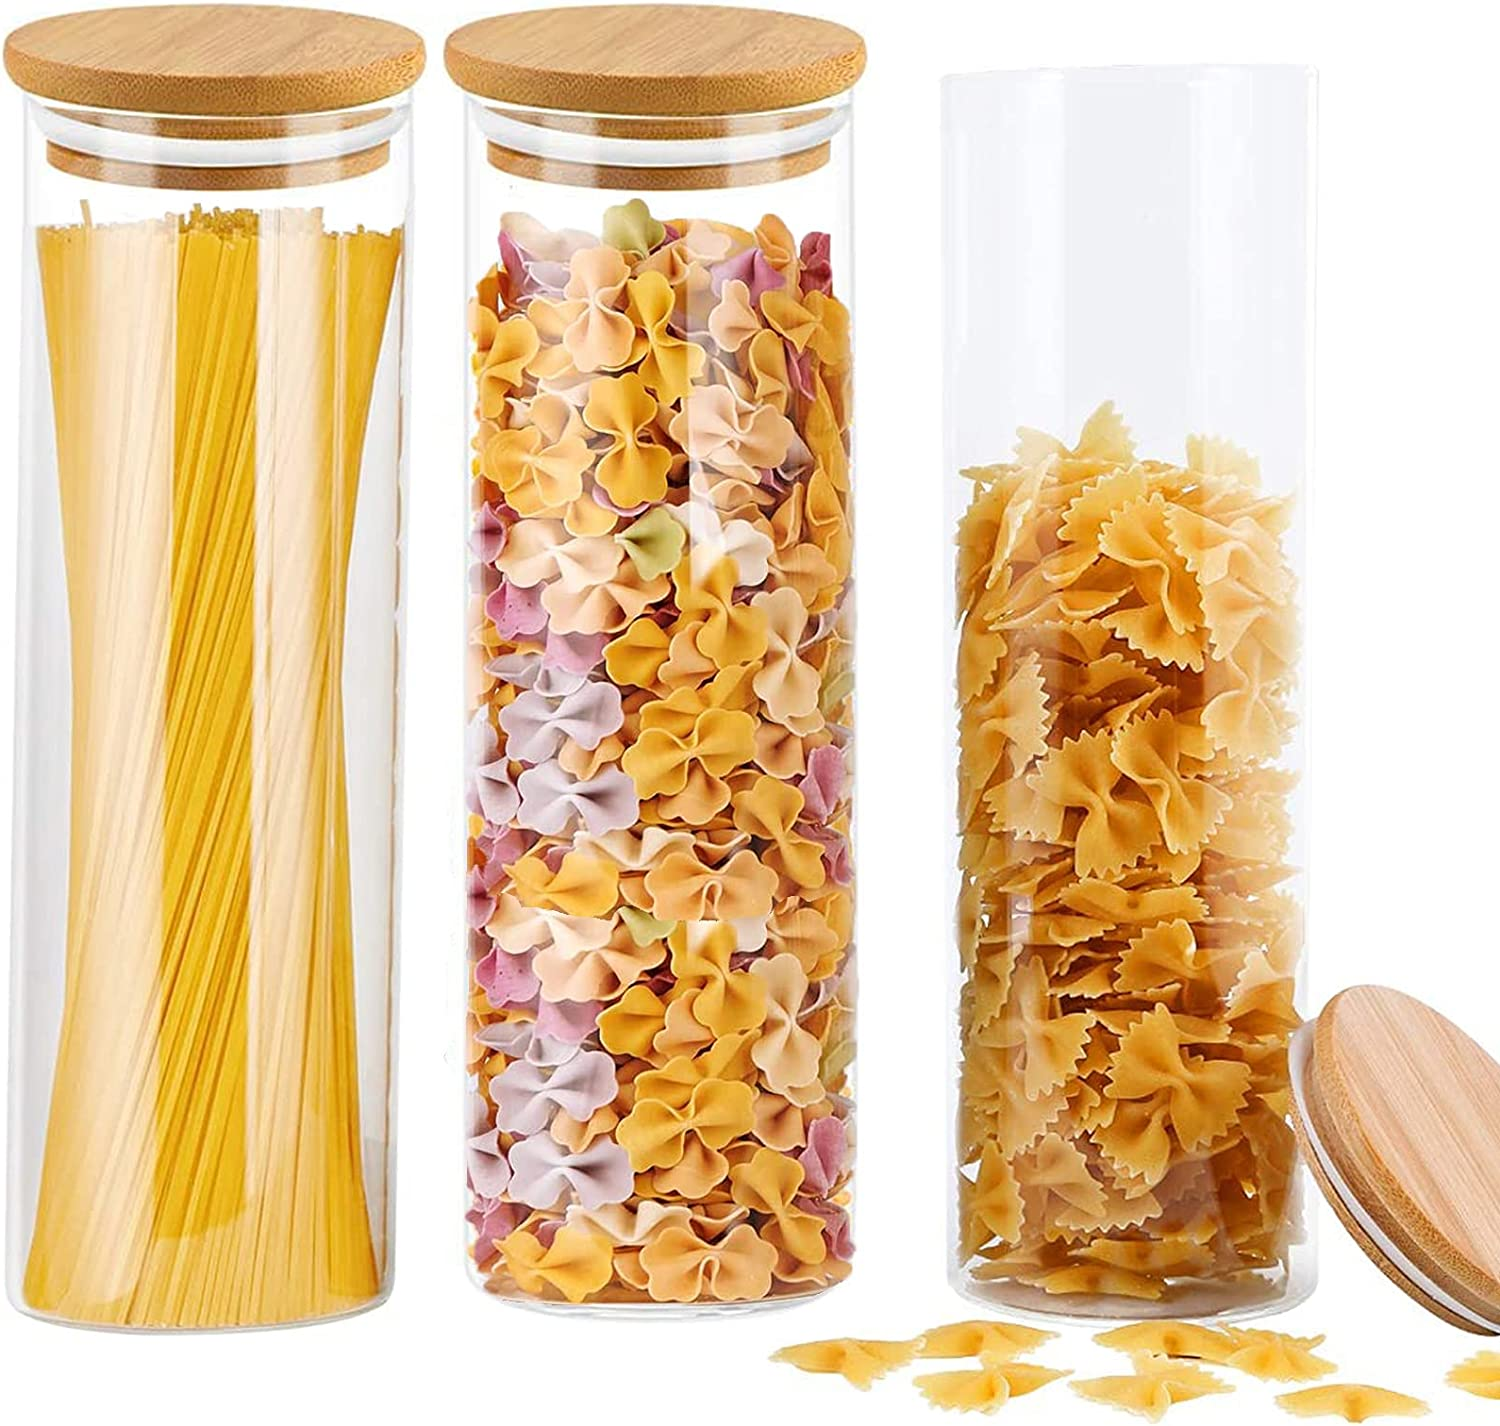 Glass Food Storage Jars Containers with Airtight Bamboo Lids,3PACK Glass Kitchen Canisters for Flour, Sugar, Coffee, Cookie Jar, Candy, Spaghetti ,Rice, Herbs, Grains- 47.5oz(1350ml)